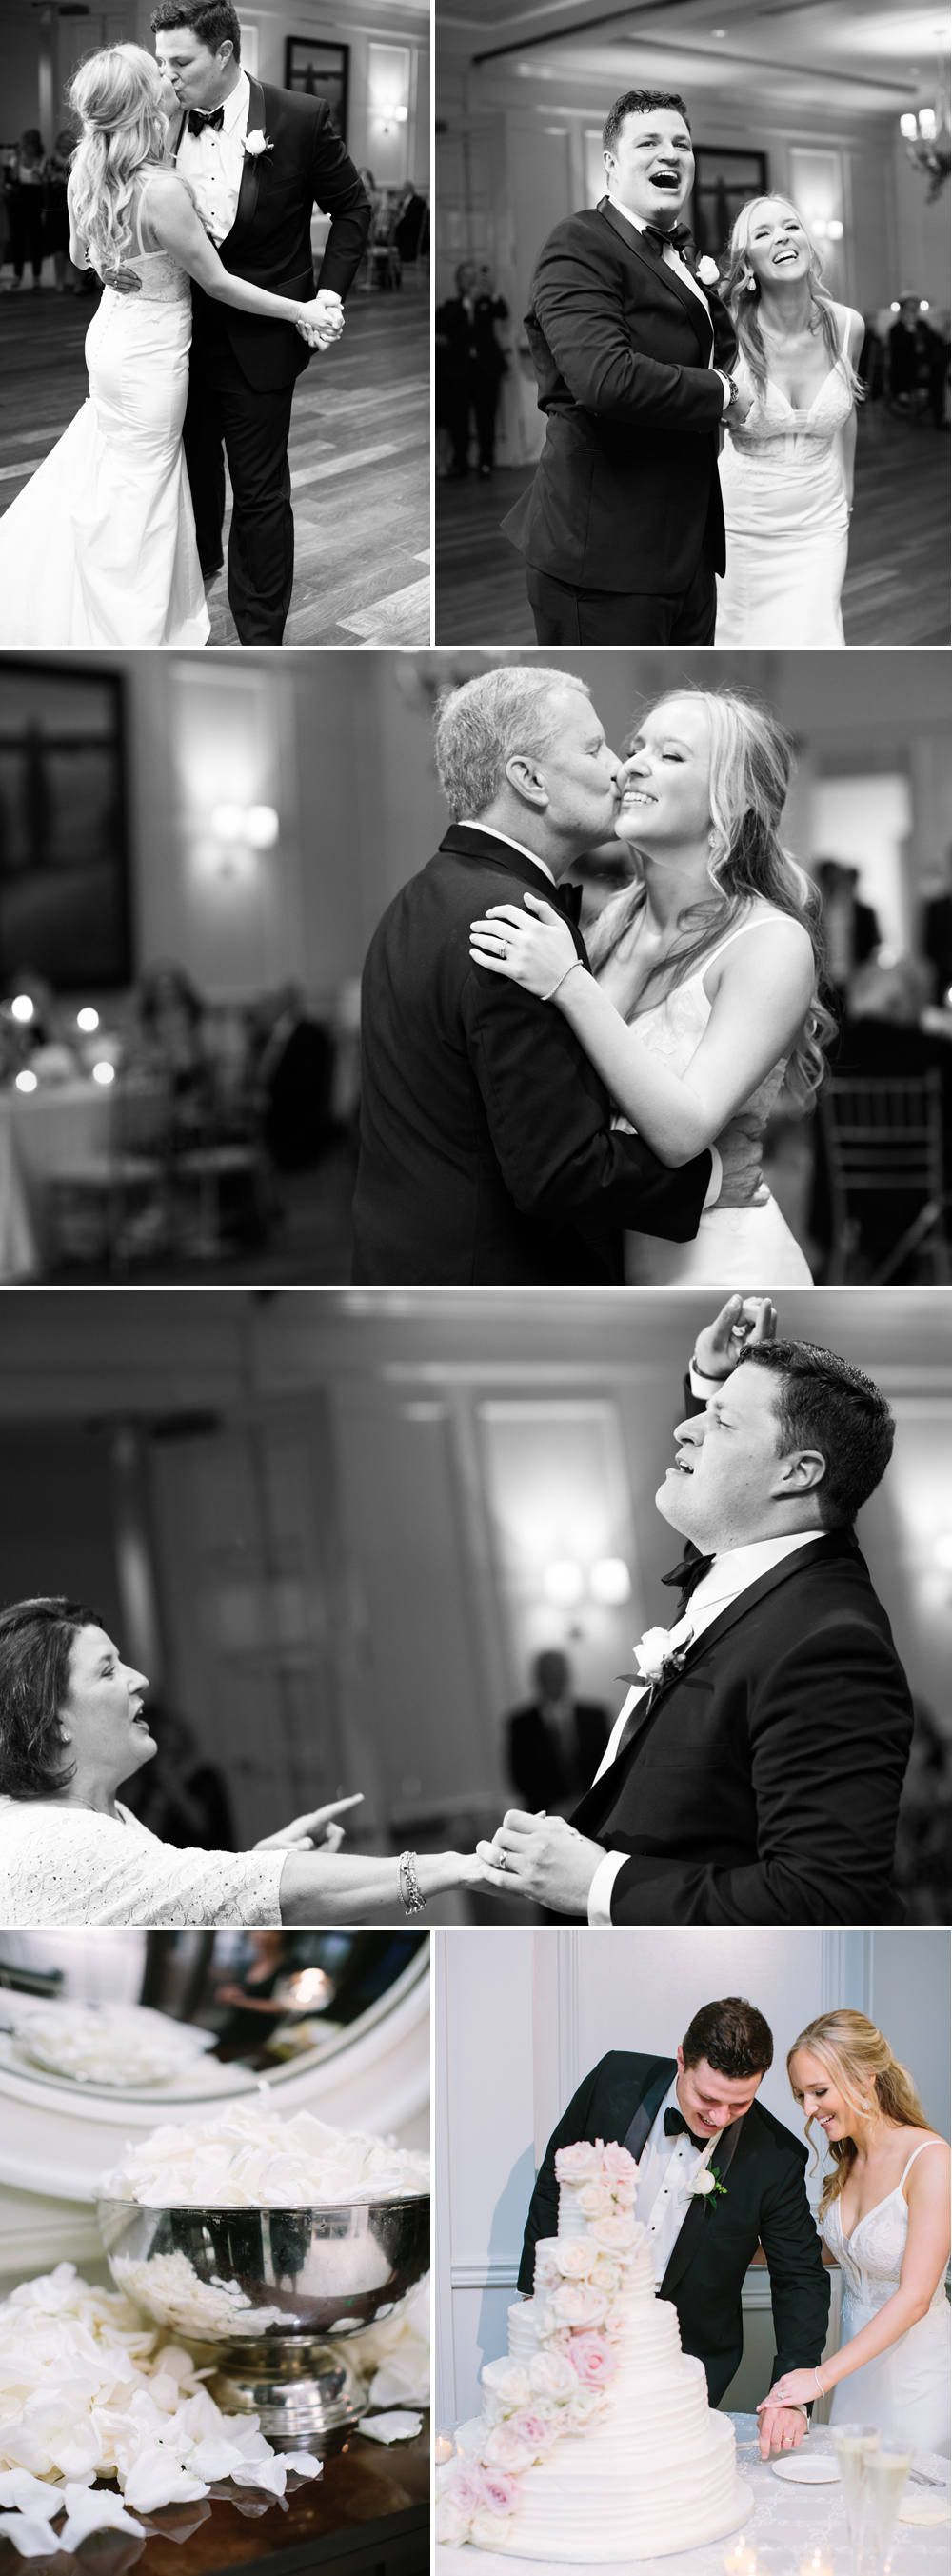 Nashville_Wedding_Photographer_Rachel_Moore_7.jpg